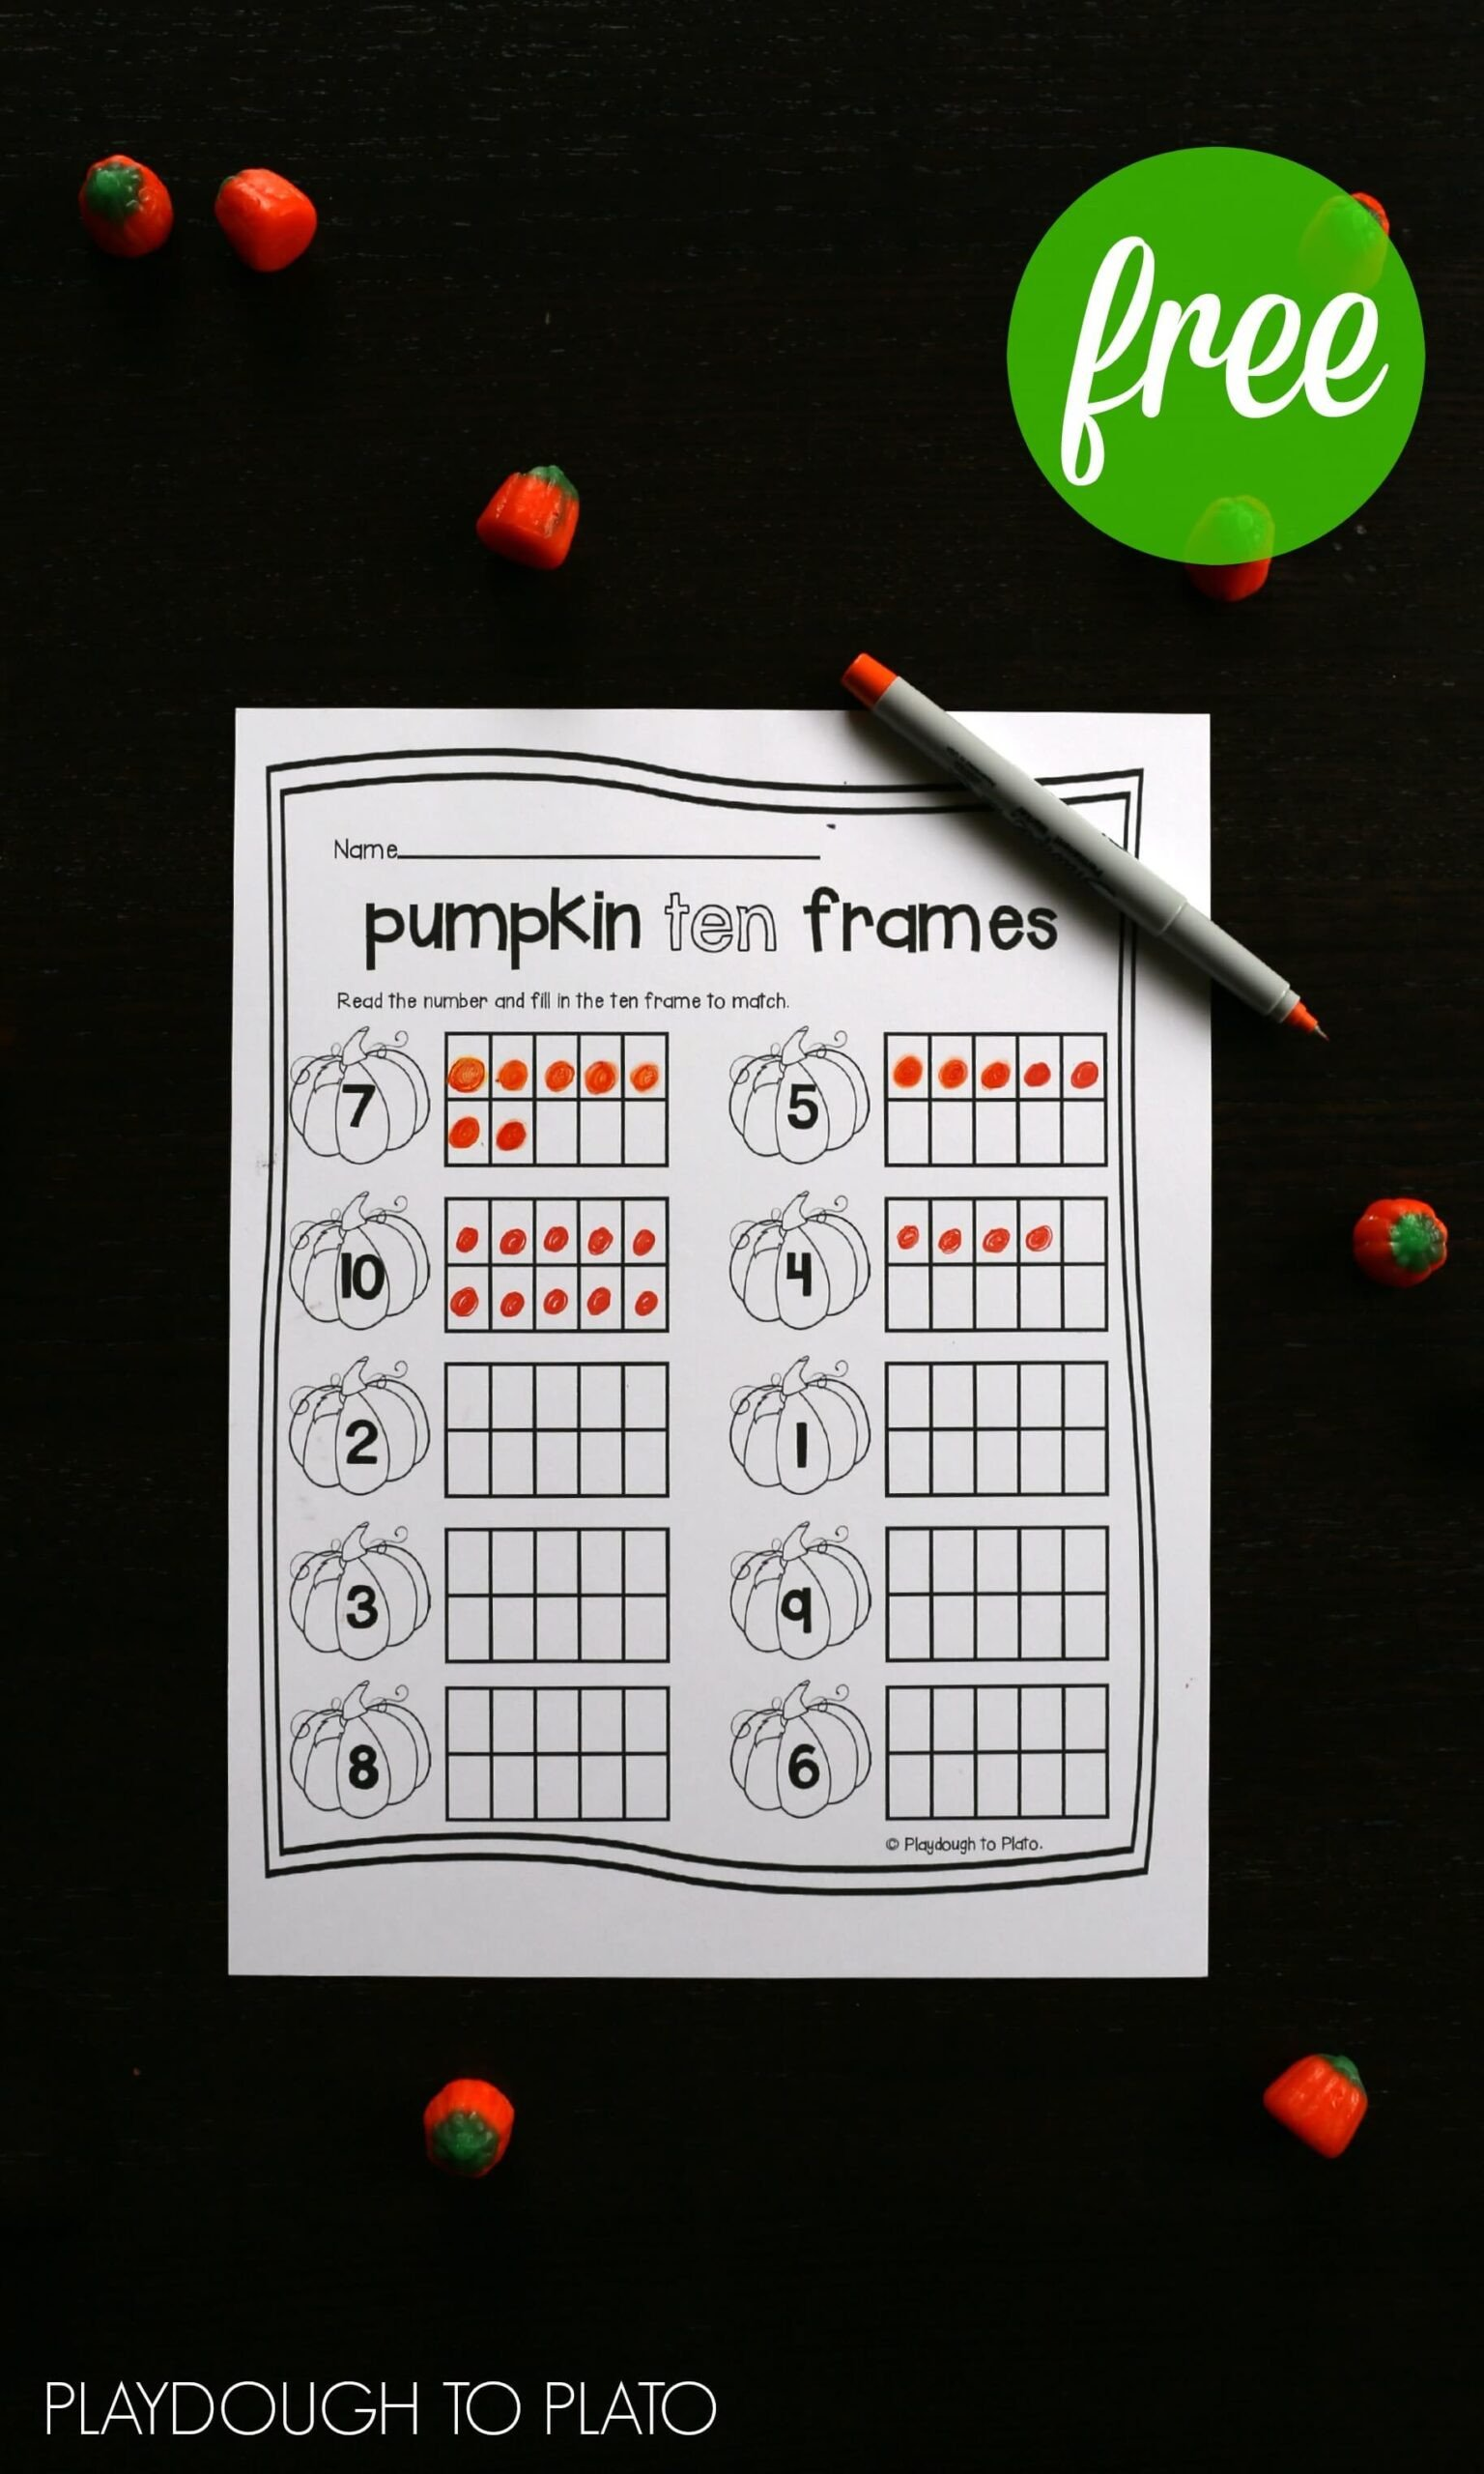 FREE pumpkin ten frame sheets Perfect fall activity for preschoolers or kindergarteners scaled